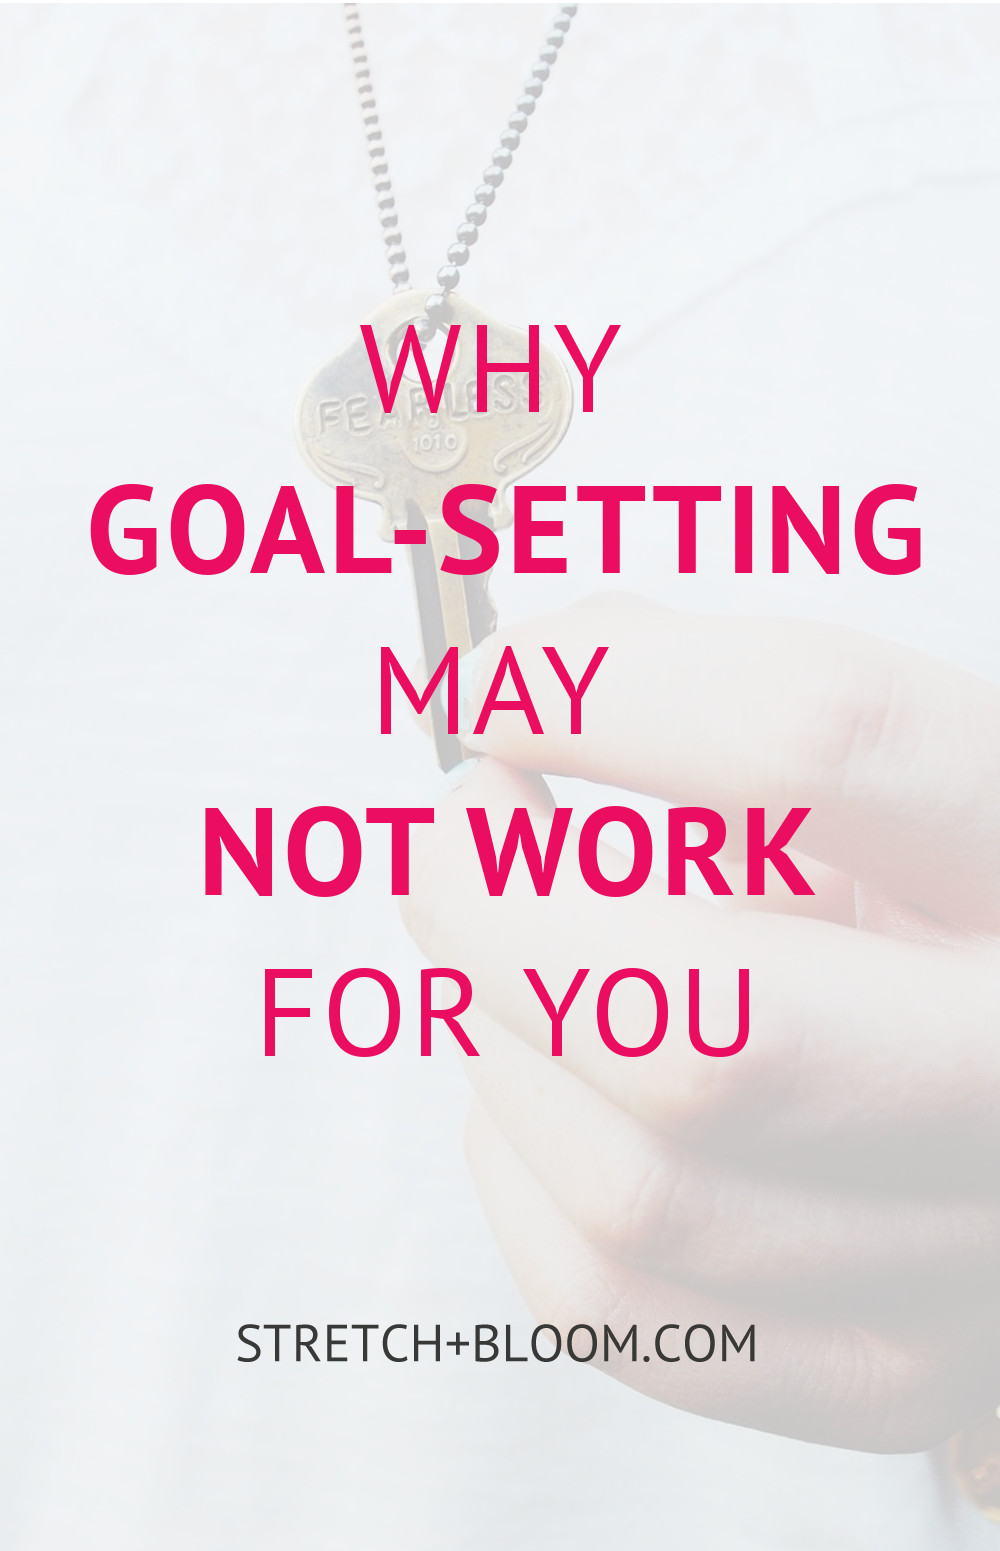 Goal-seeting is a crucial key to success. However most people are missing a crucial element to make it work for them and reap the results. It's not about resilience and willpower. The secret lies much deeper... Click the pin to learn more